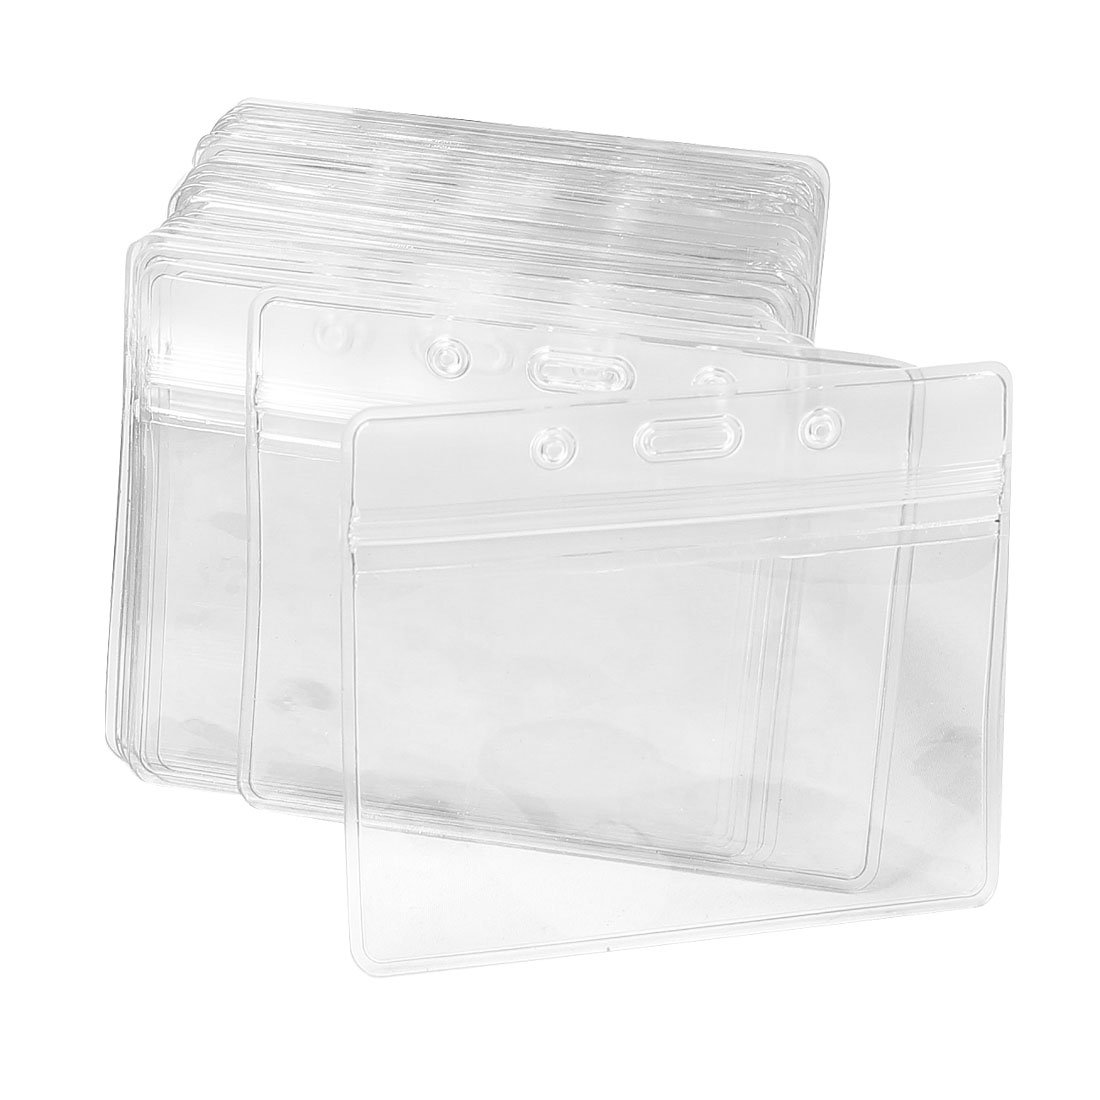 uxcell Plastic Horizontal Name Tag Badge ID Card Holders, 50-Piece, Clear